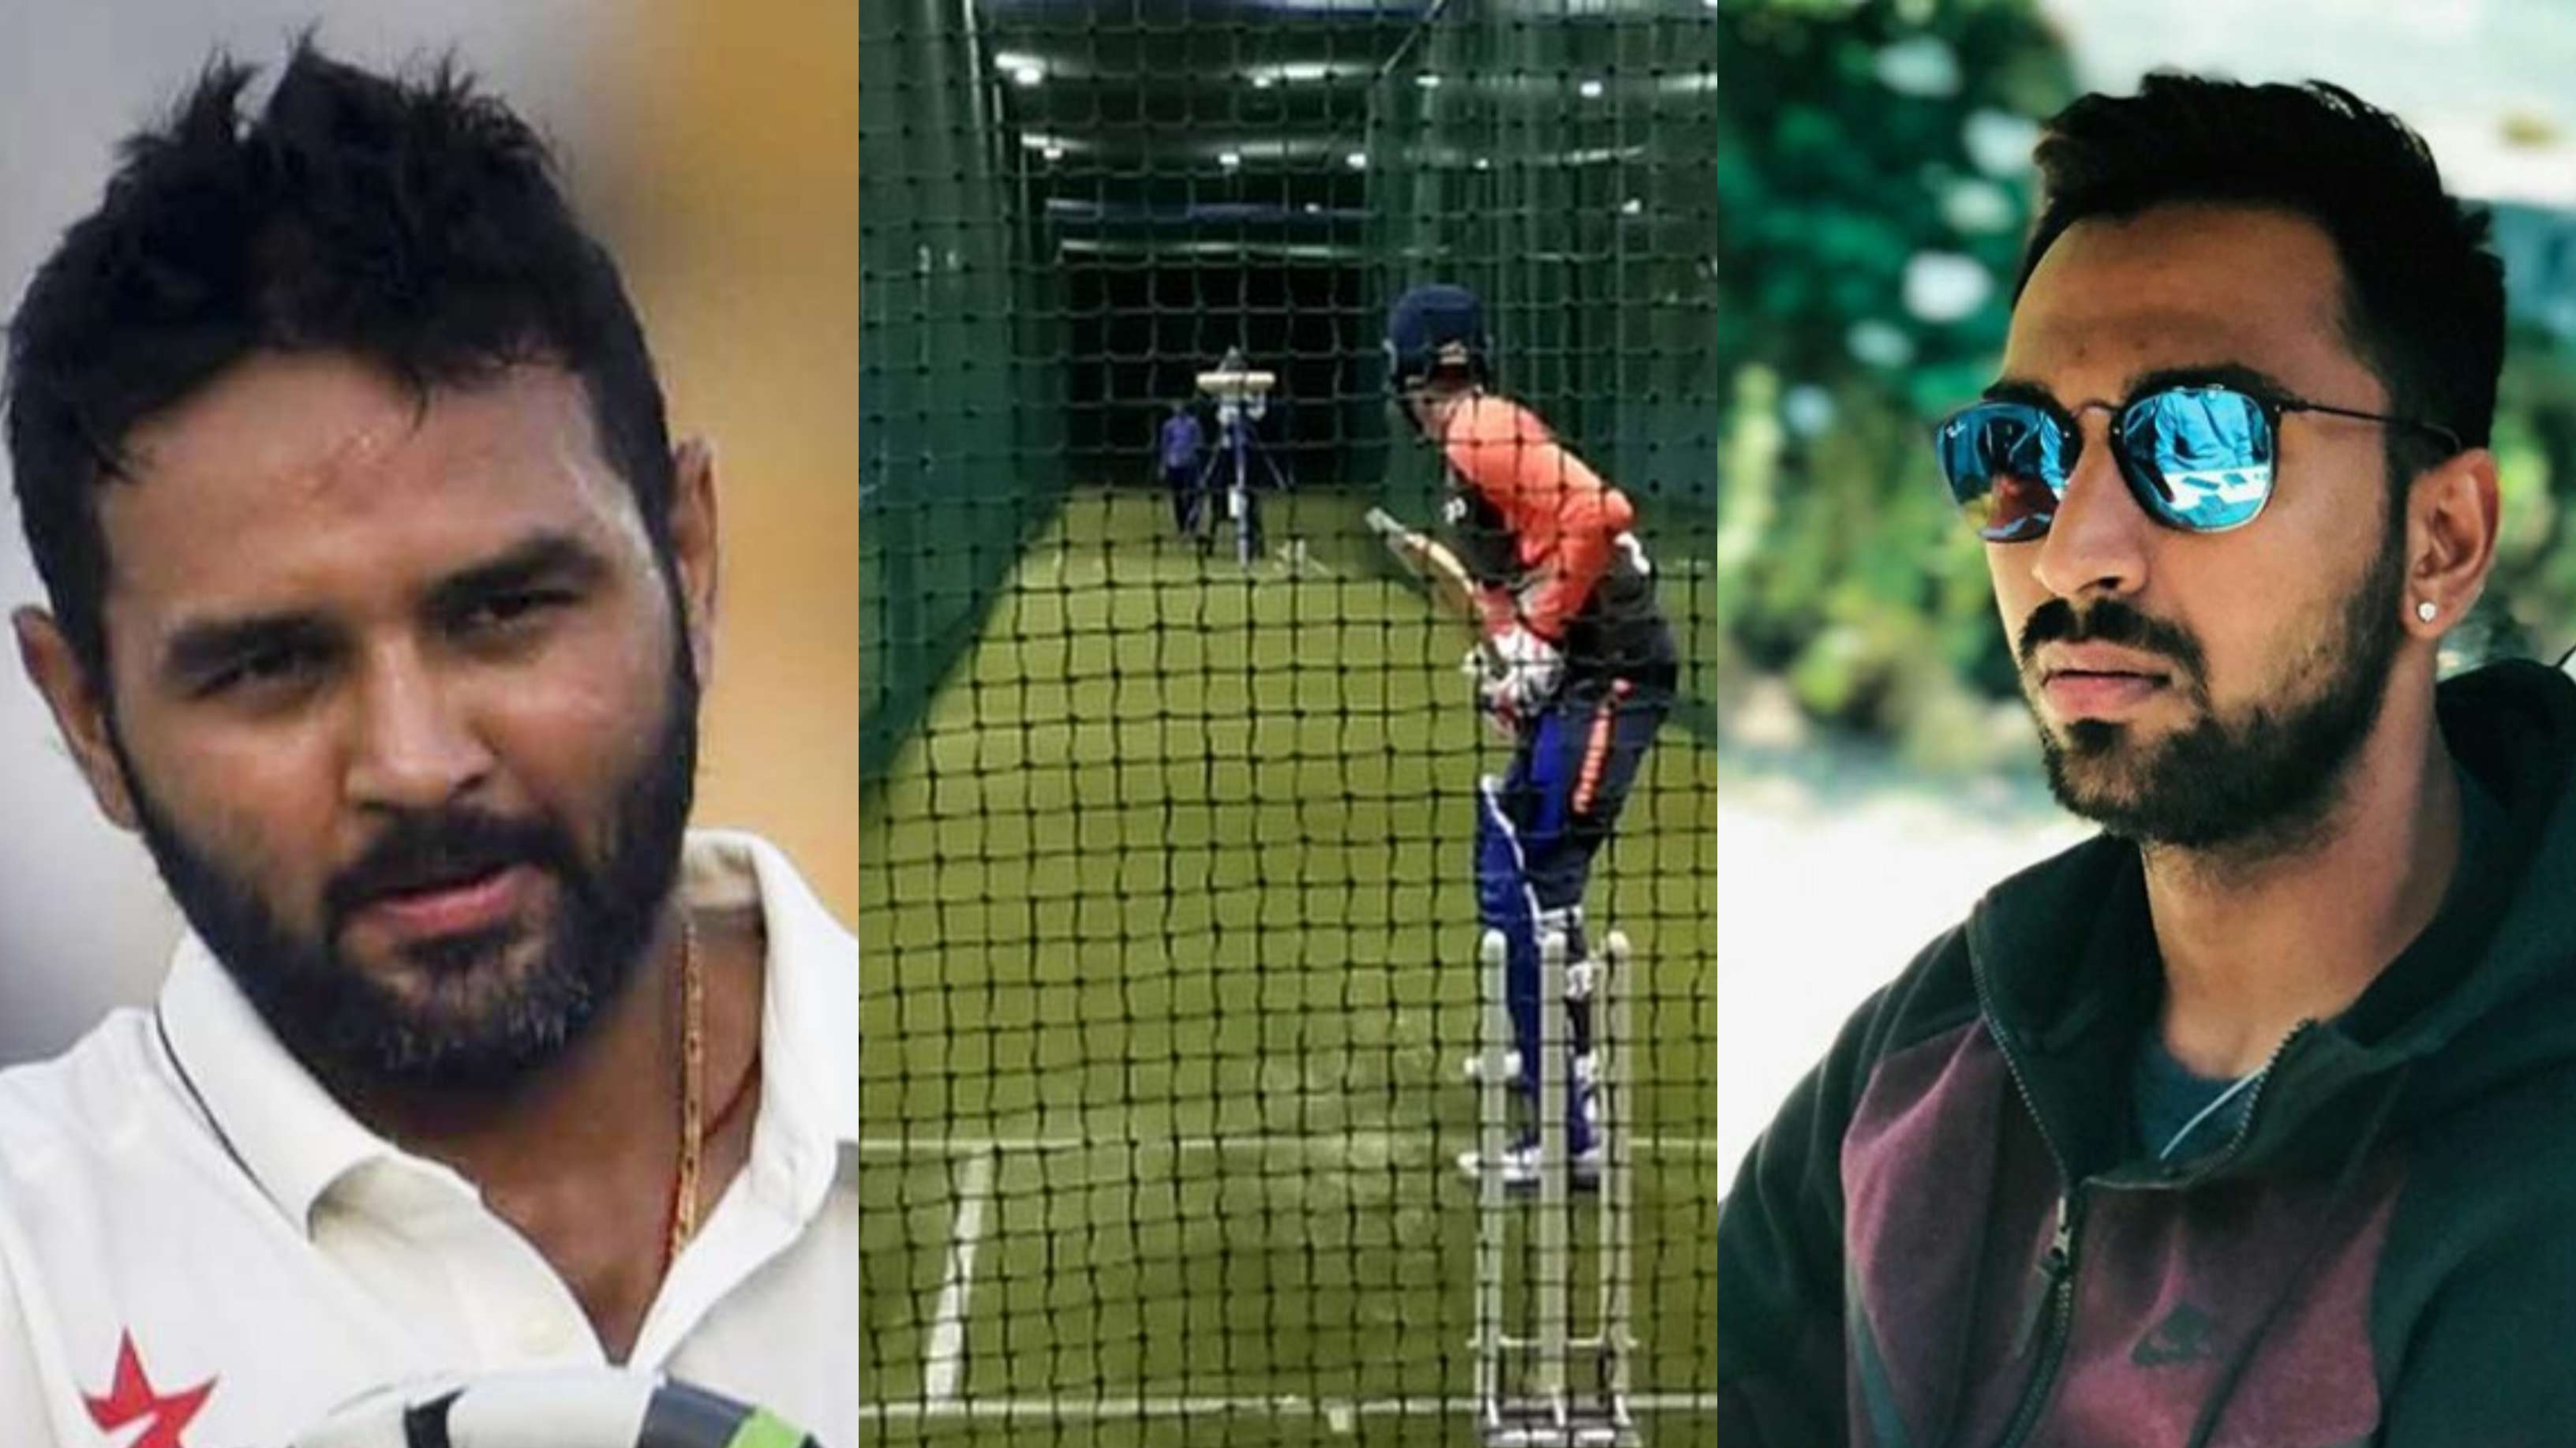 WATCH: Krunal Pandya's powerful hits in net session amazes Parthiv Patel